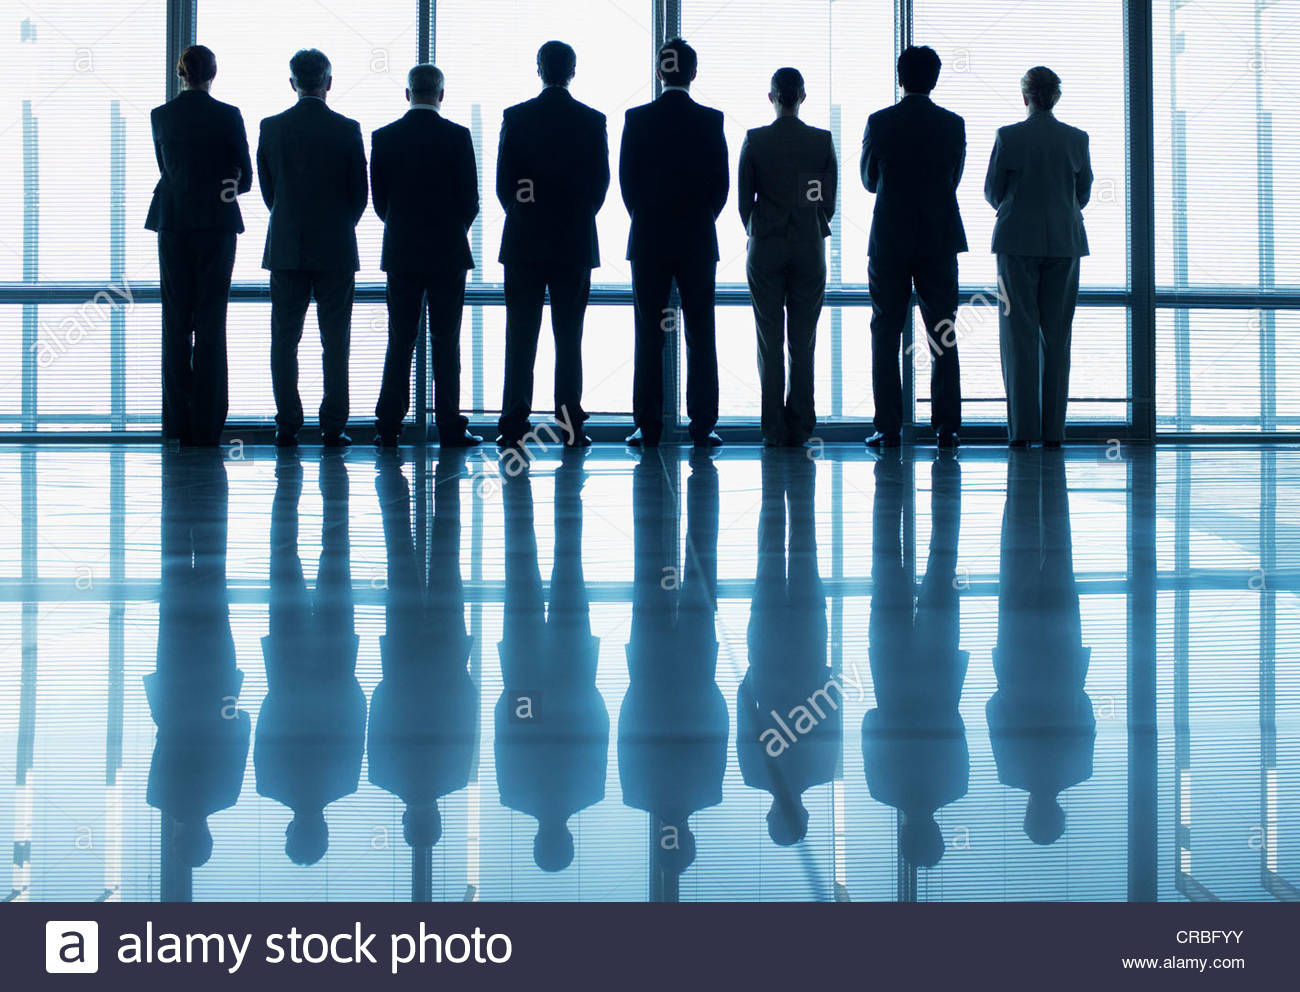 Silhouette of business people in a row looking out lobby window - Stock Image